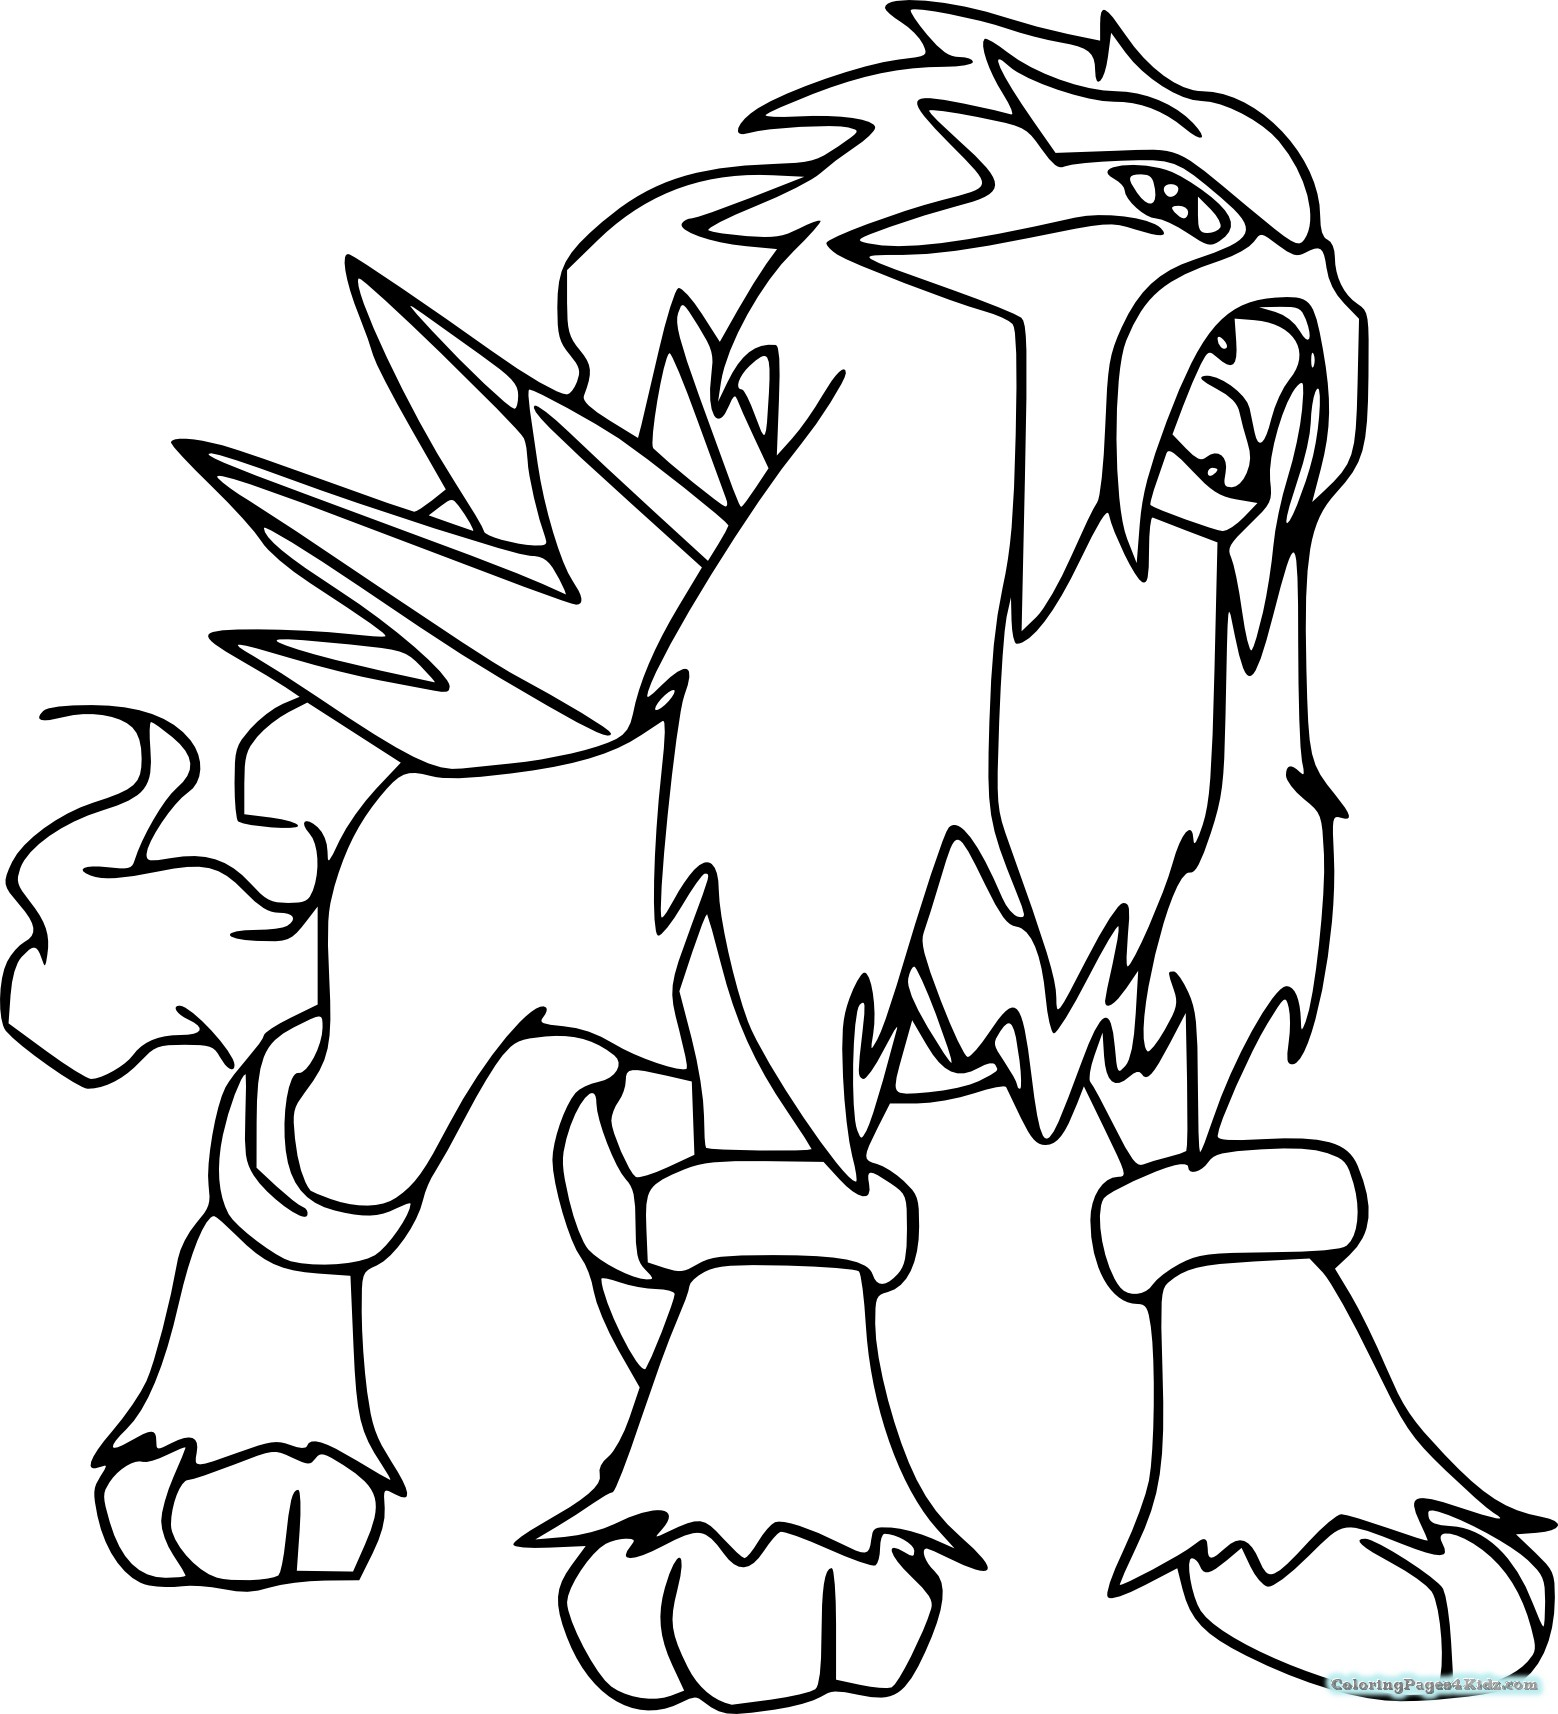 pokemon printables all pokemon coloring pages free printable all pokemon pokemon printables